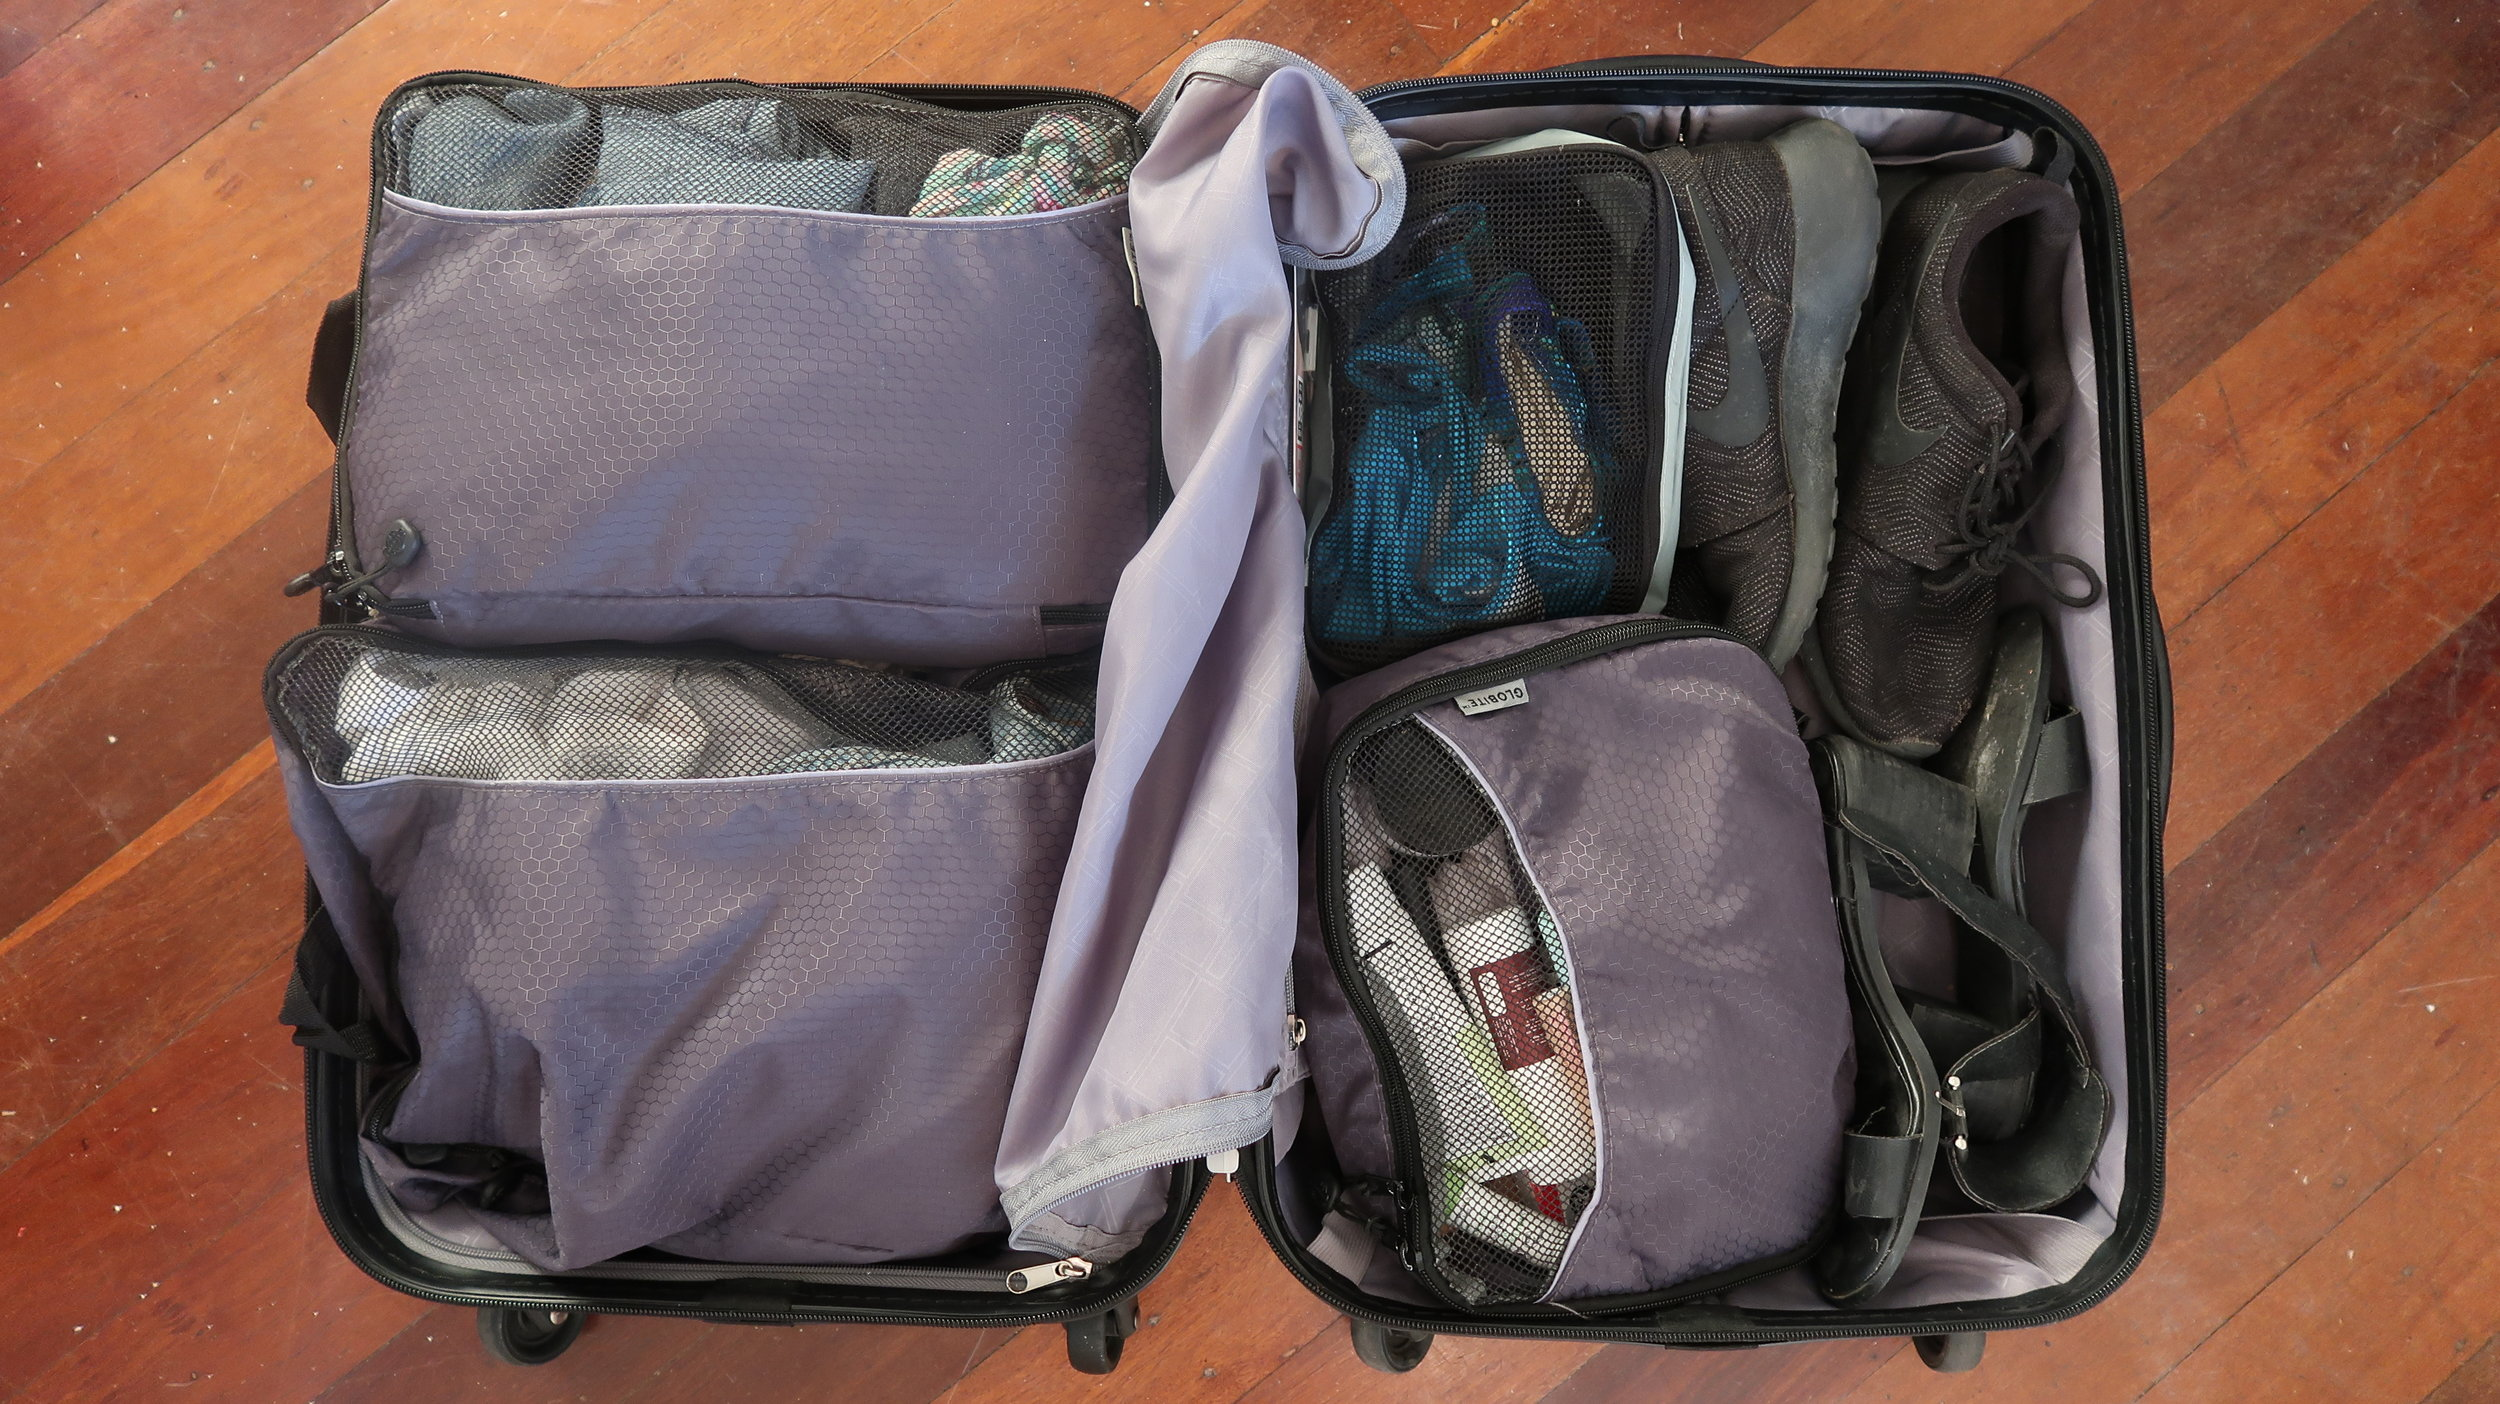 MIssing from my bag: My laptop and camera that I'm making this blog post with.